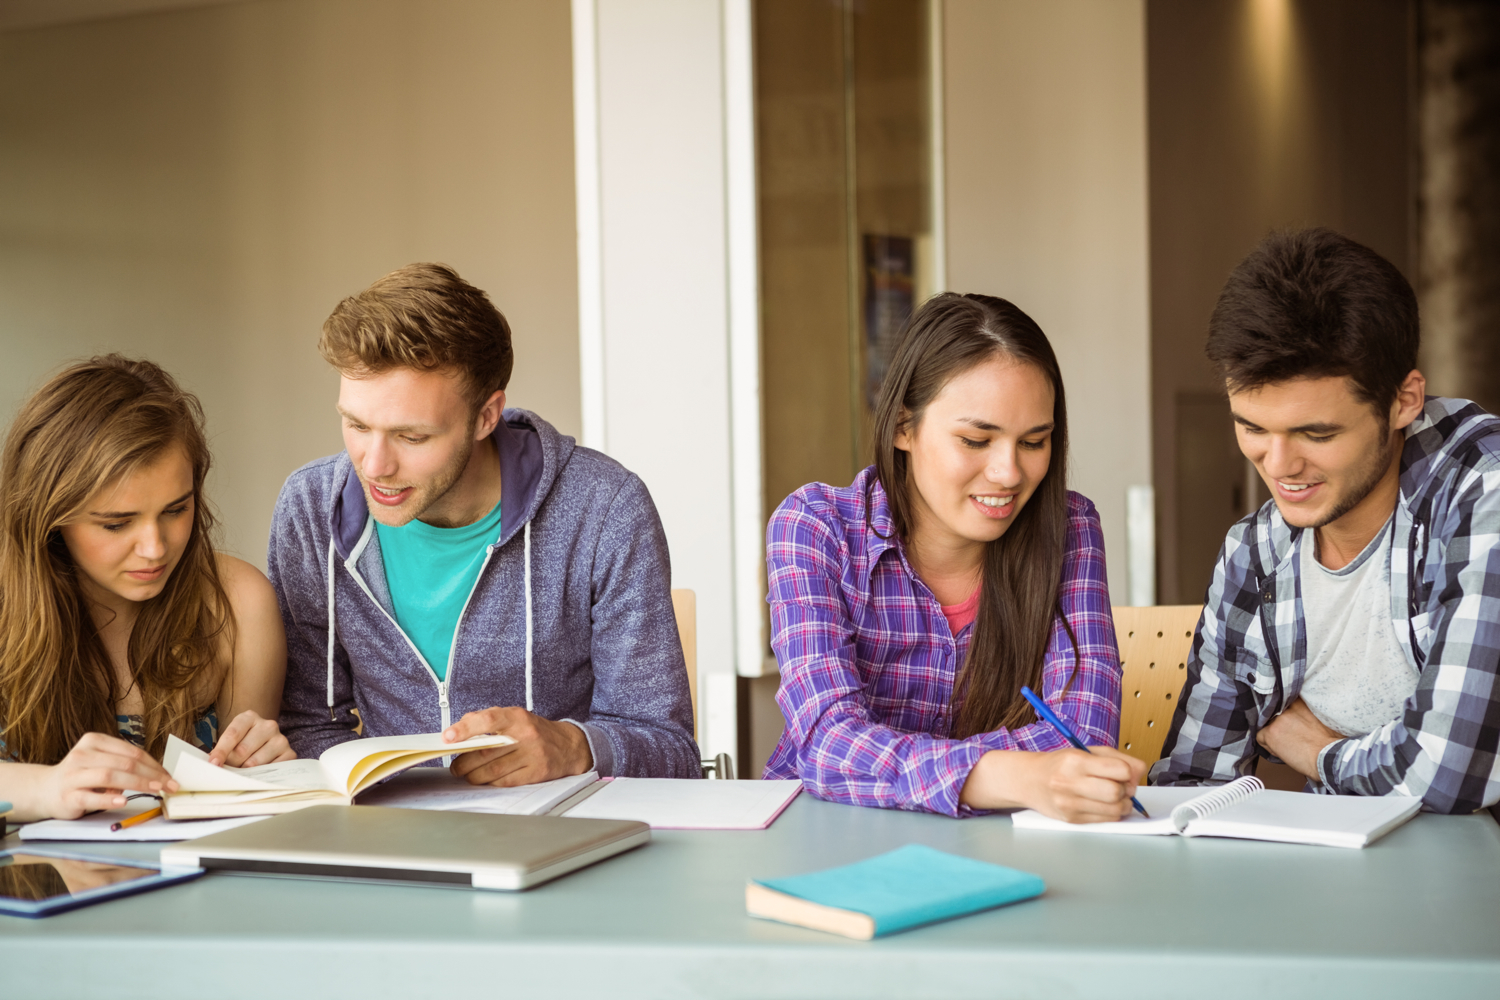 image BAC-CH-home-1-1500-photodune-10078411-smiling-friends-students-revising-together-at-school-for-teamwork-xxl.jpg